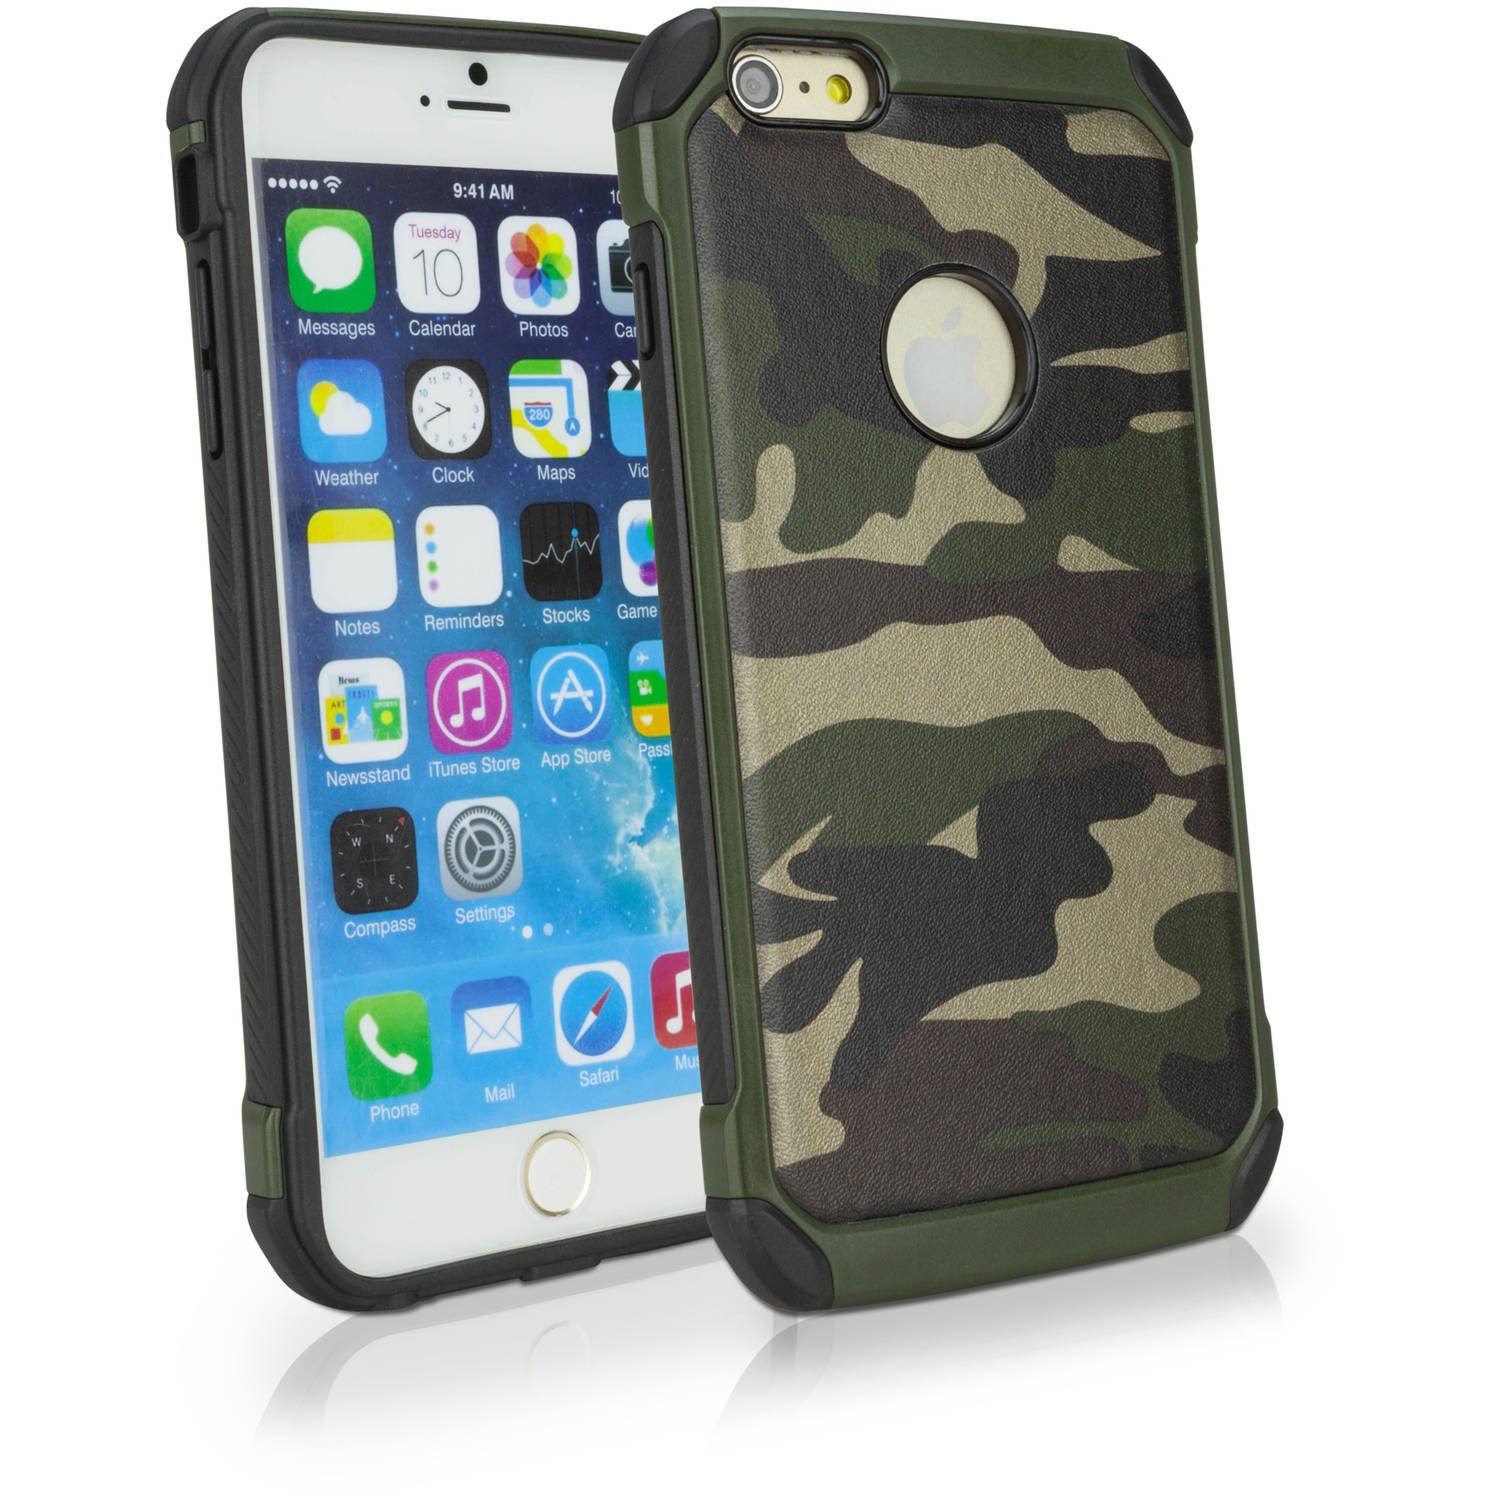 BoxWave CamoSuit Tough Armor Shell Cover for Apple iPhone 6 Plus/6s Plus